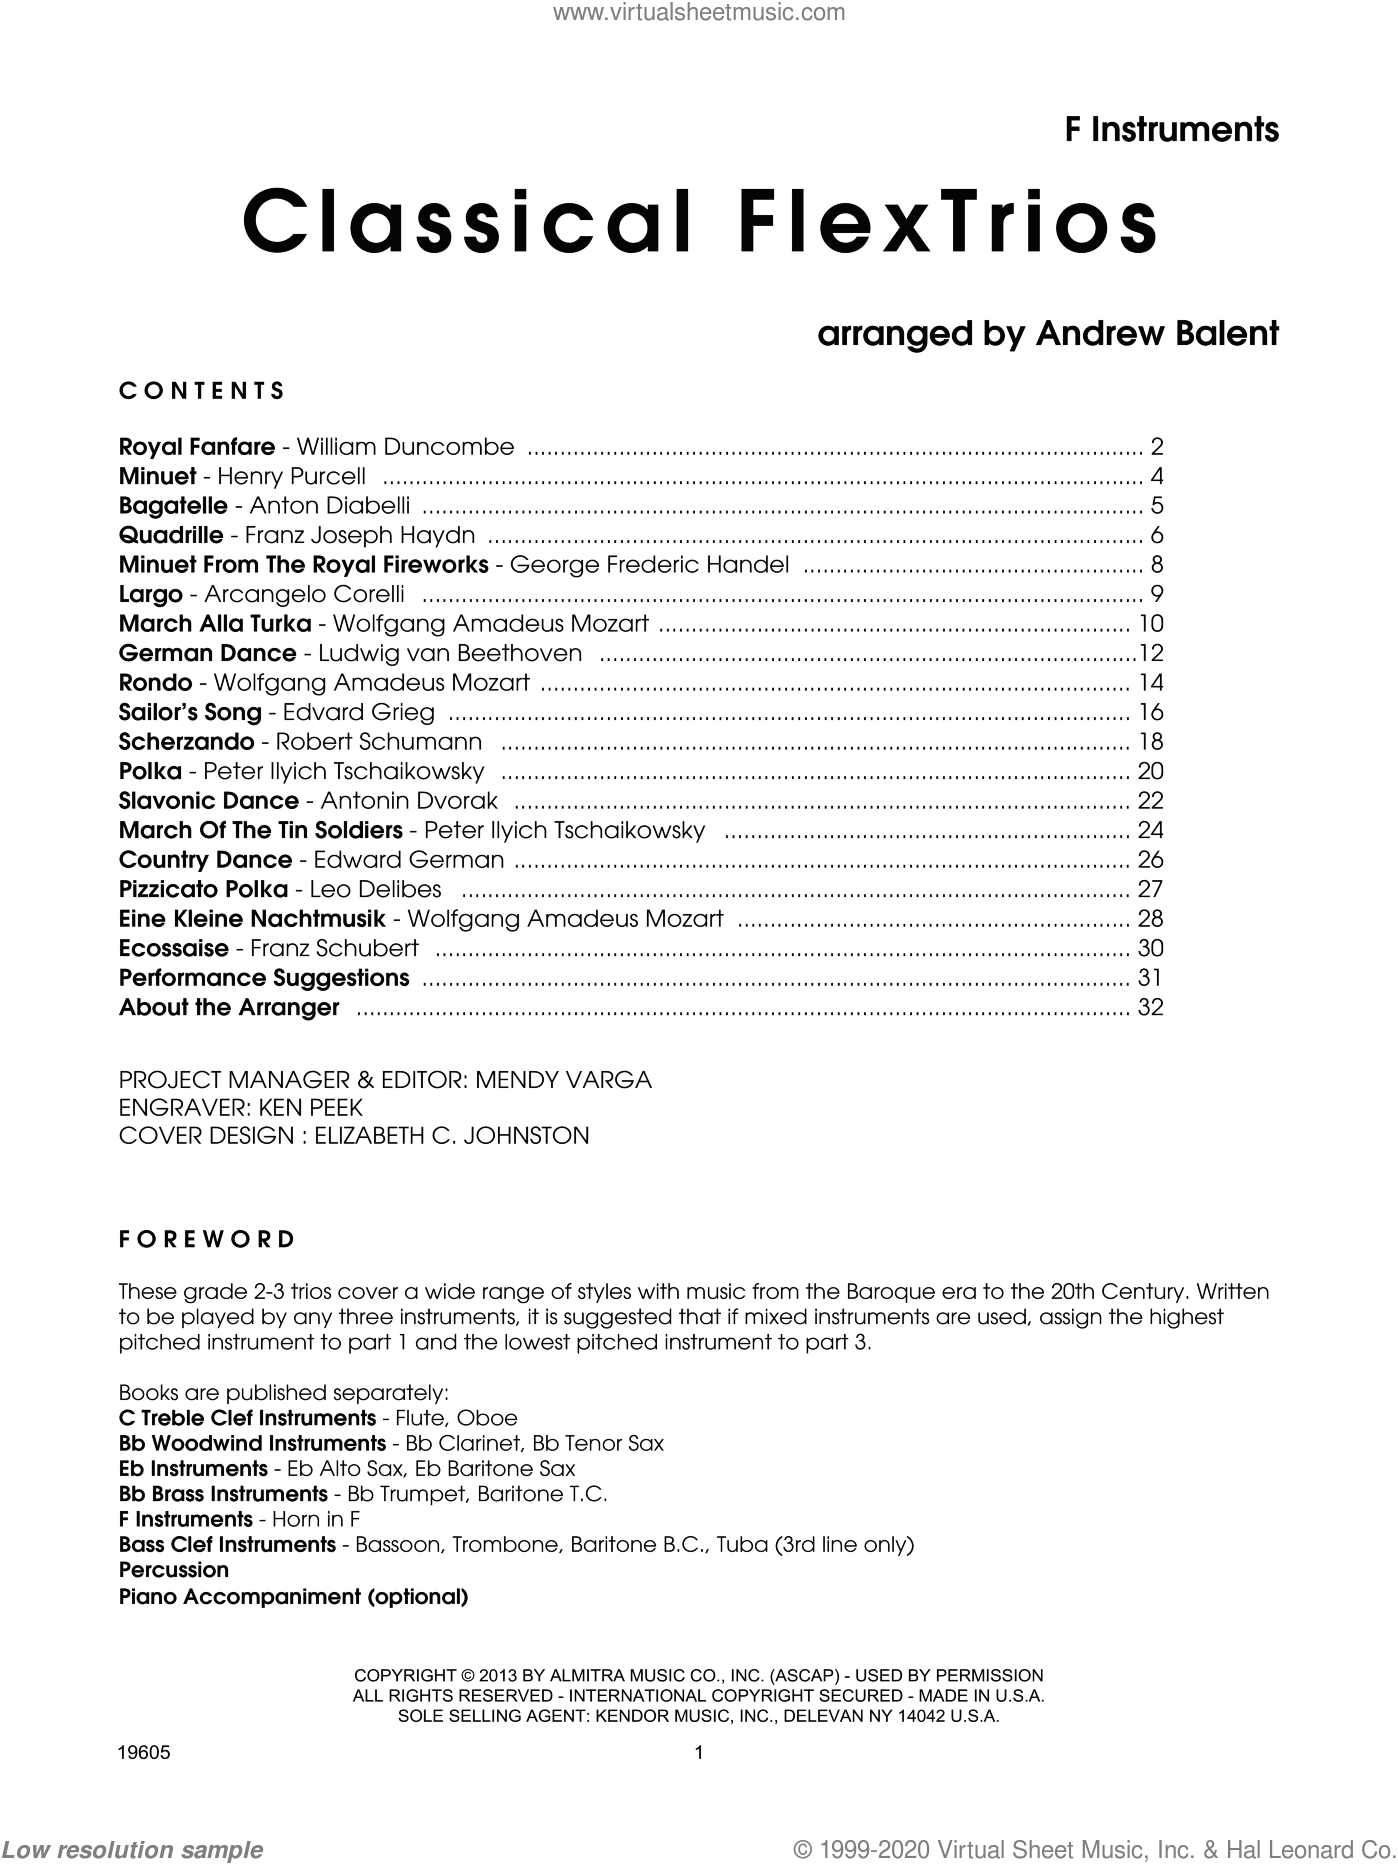 Classical FlexTrios, f instruments sheet music for trio (f instruments) by Balent. Score Image Preview.